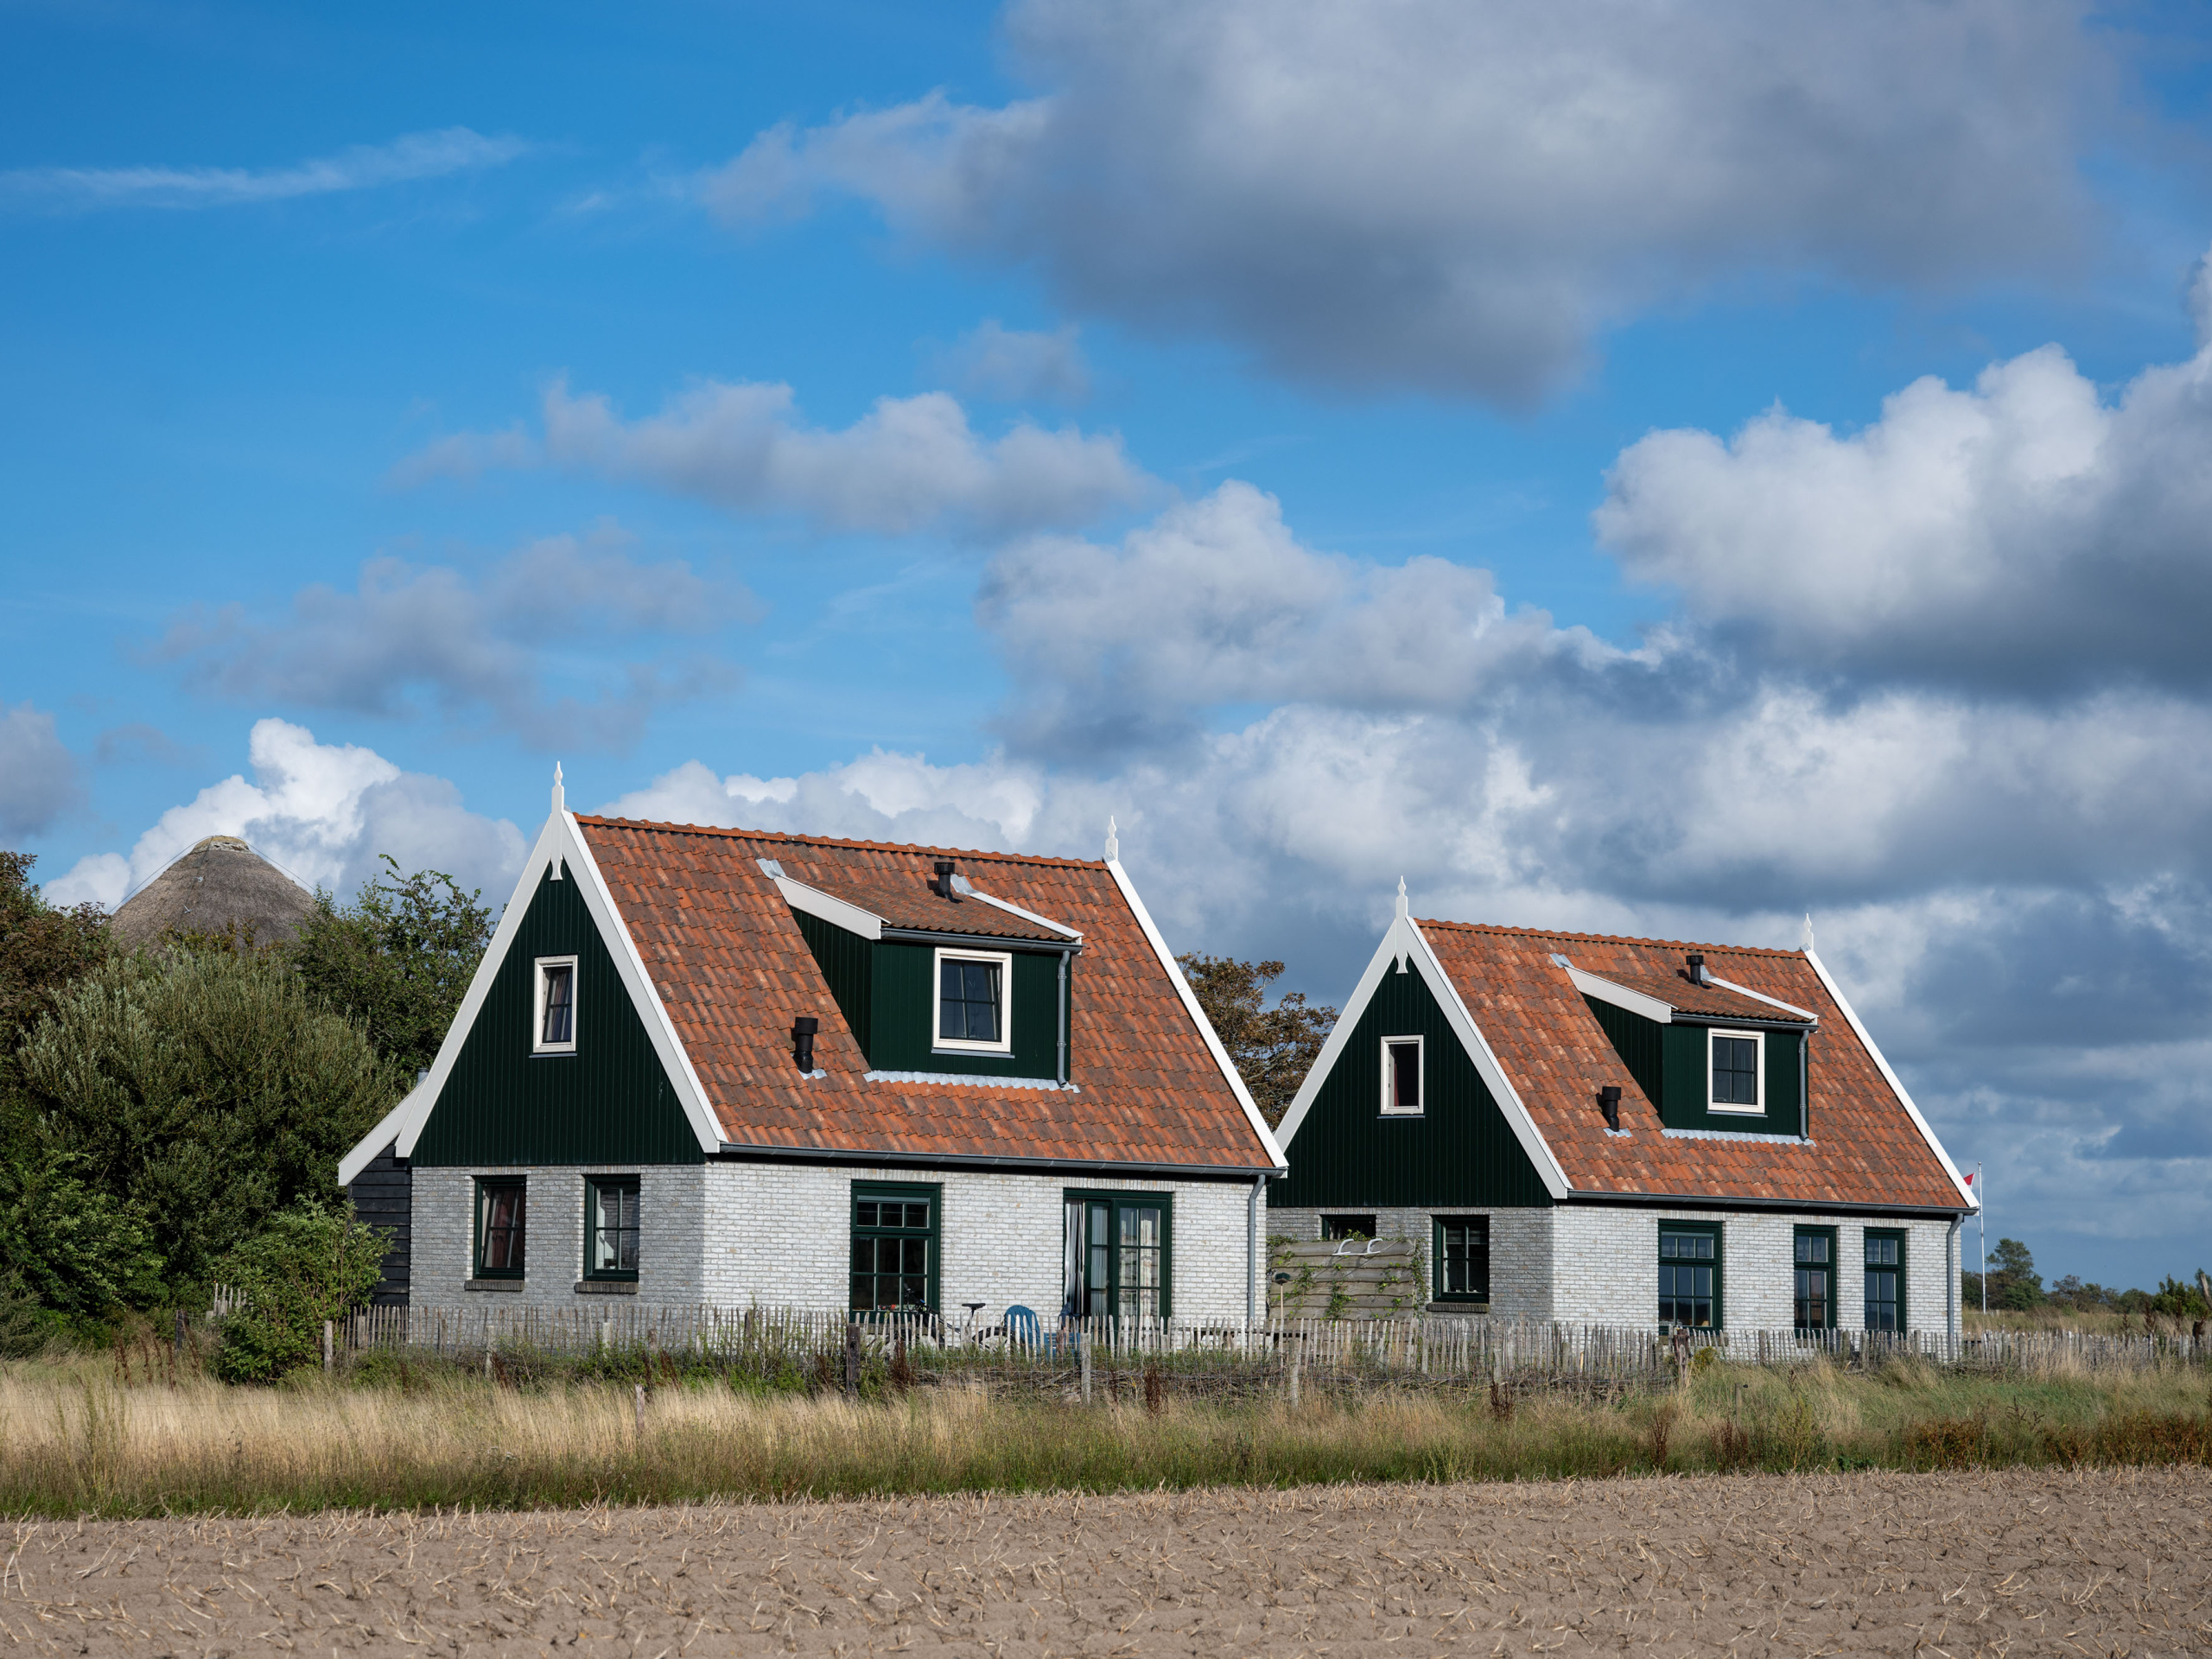 Detached holiday home with thatched roof a short distance from De Waal and Den Burg